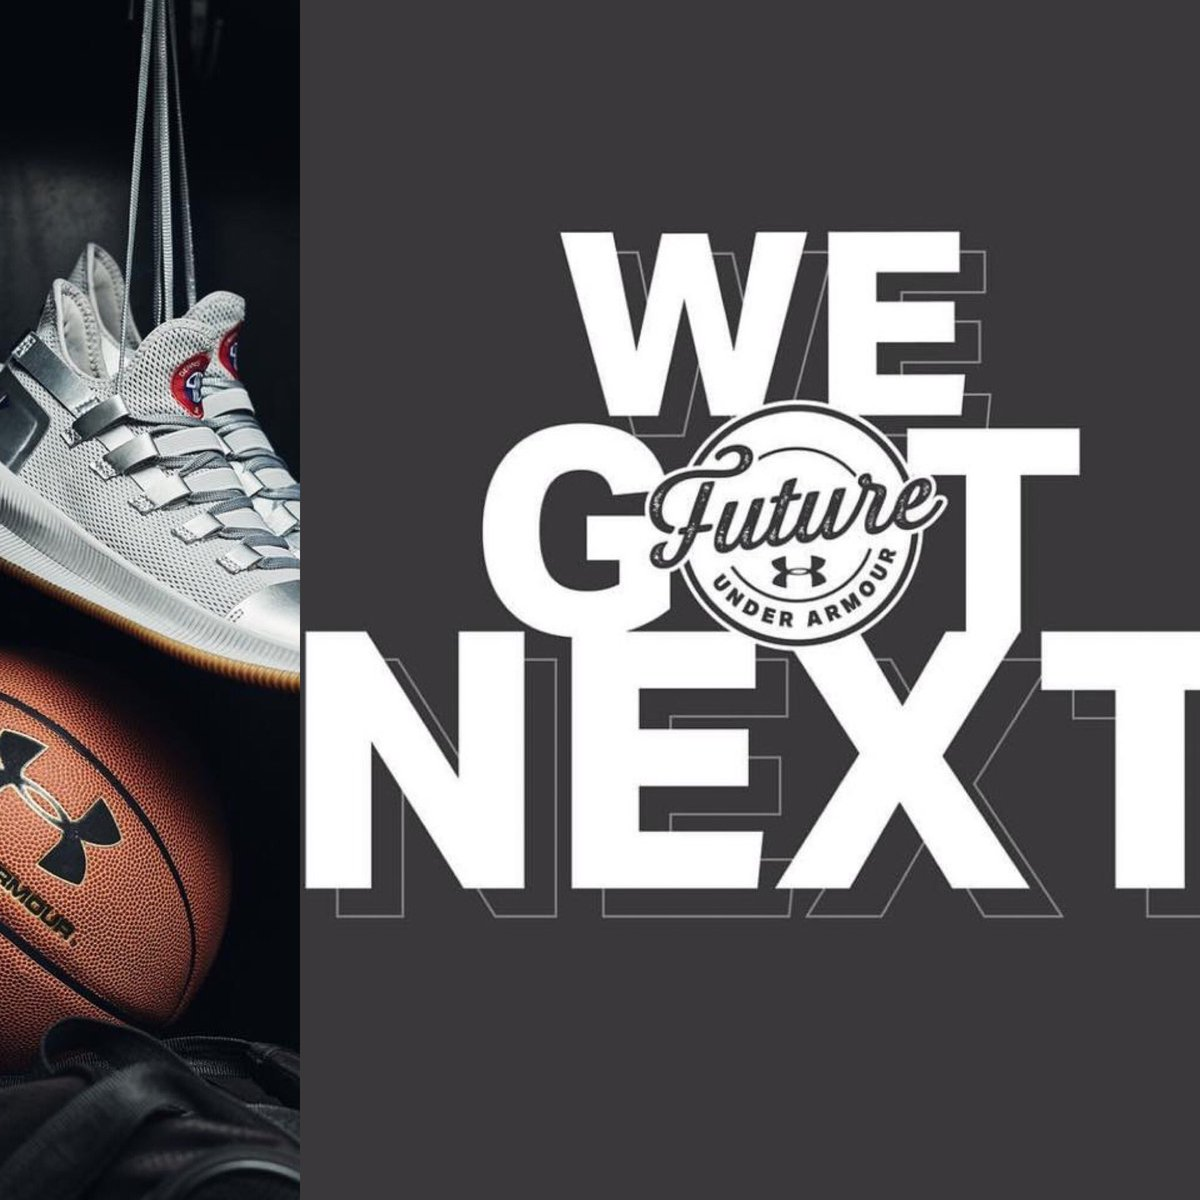 Saturday, October 3rd at the Community First Champion Center ...... 9U/3rd Grade-11U/5th Grade @ 12/30 PM & 12U/6th Grade-14U/8th Grade @ 3:00 PM.  If you have what it takes to represent Wisconsin, contact us at WisconsinPGC@gmail.com #PGCFamily💜 #UAFuture🏀 #ThroughThisTogether https://t.co/5T4ngPj8bh